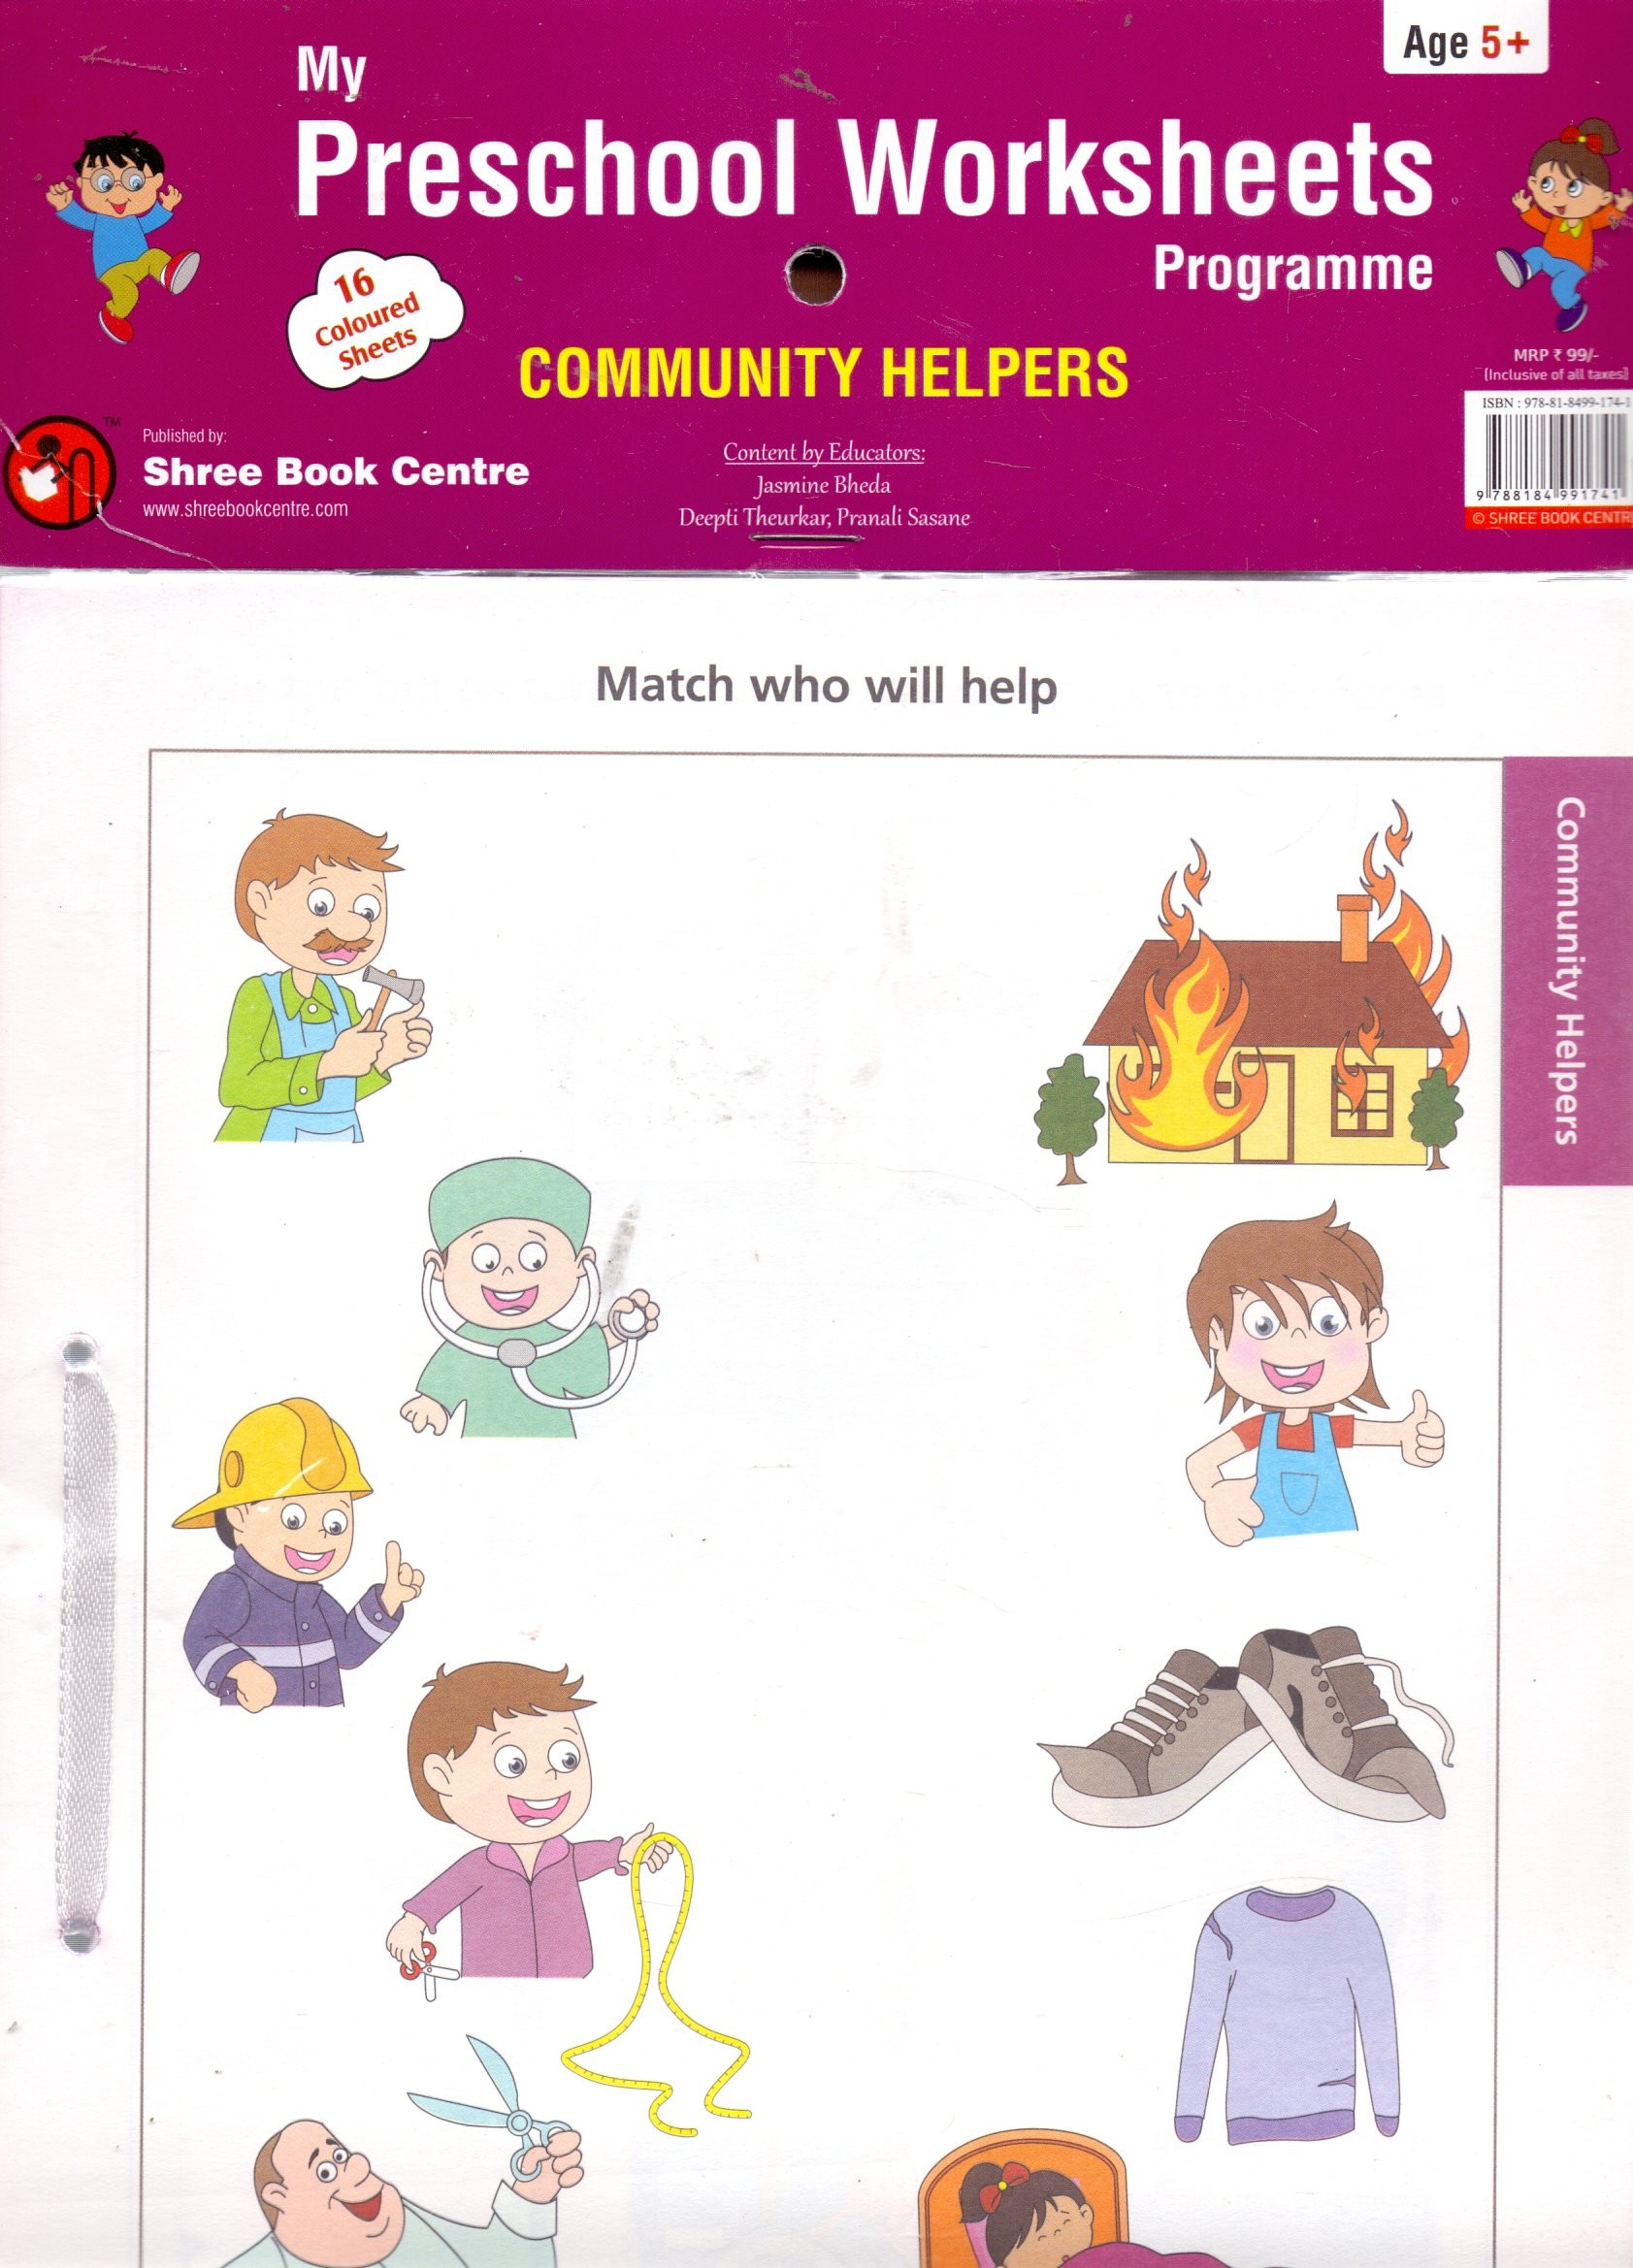 Community Helpers Worksheet for Preschool My Preschool Worksheets Programme Munity Helpers Book